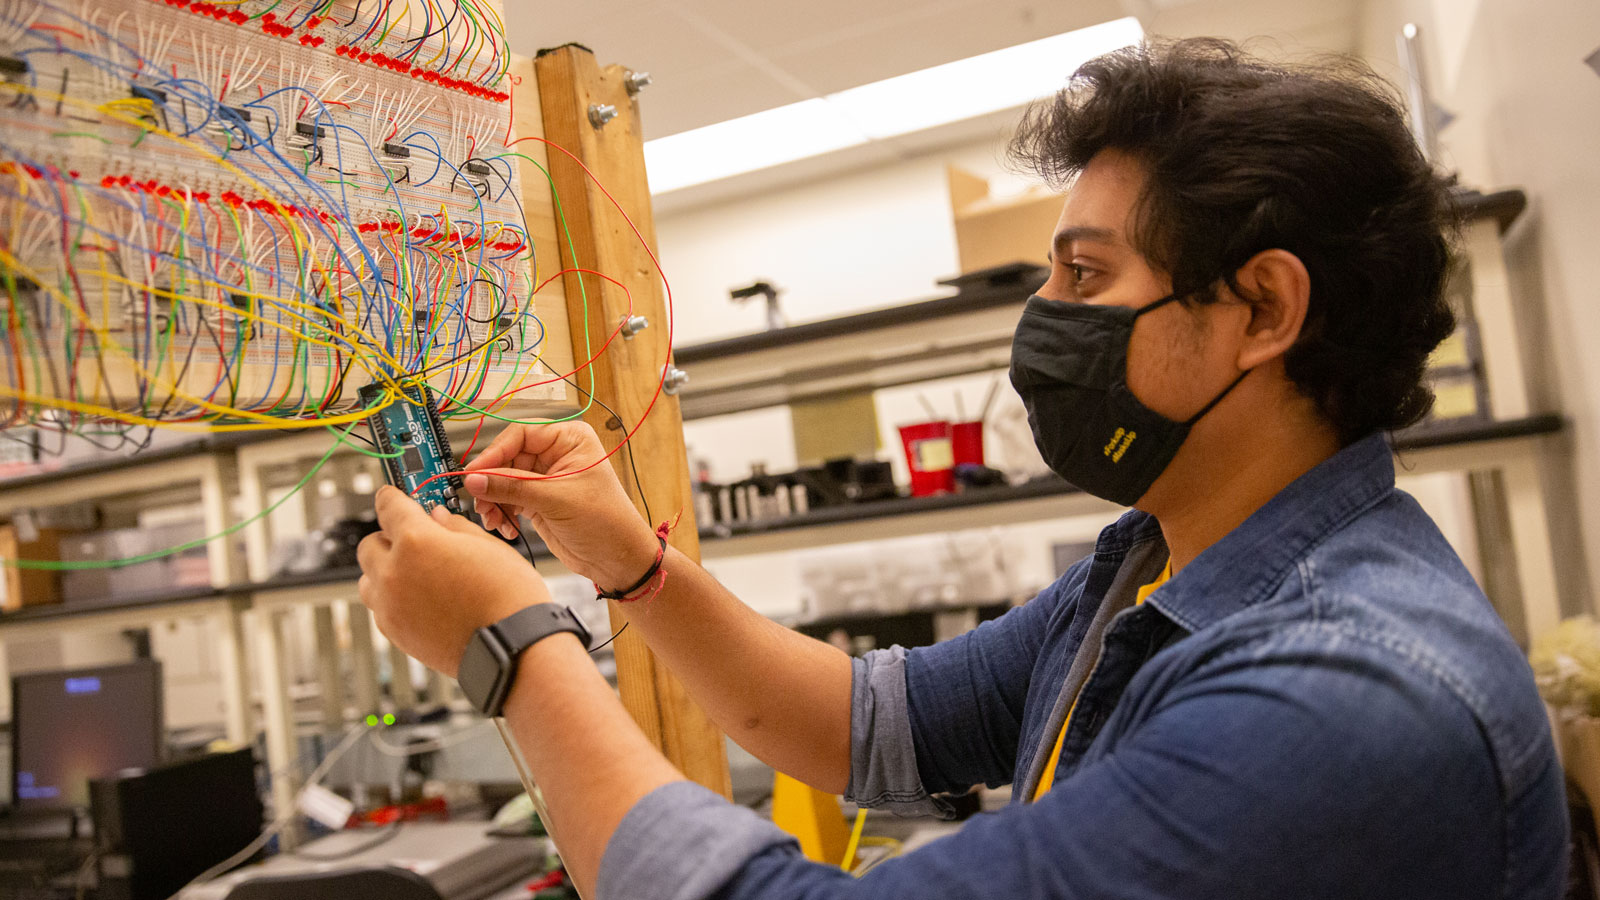 Anand Sengar examines small, colorful wires in a lab.